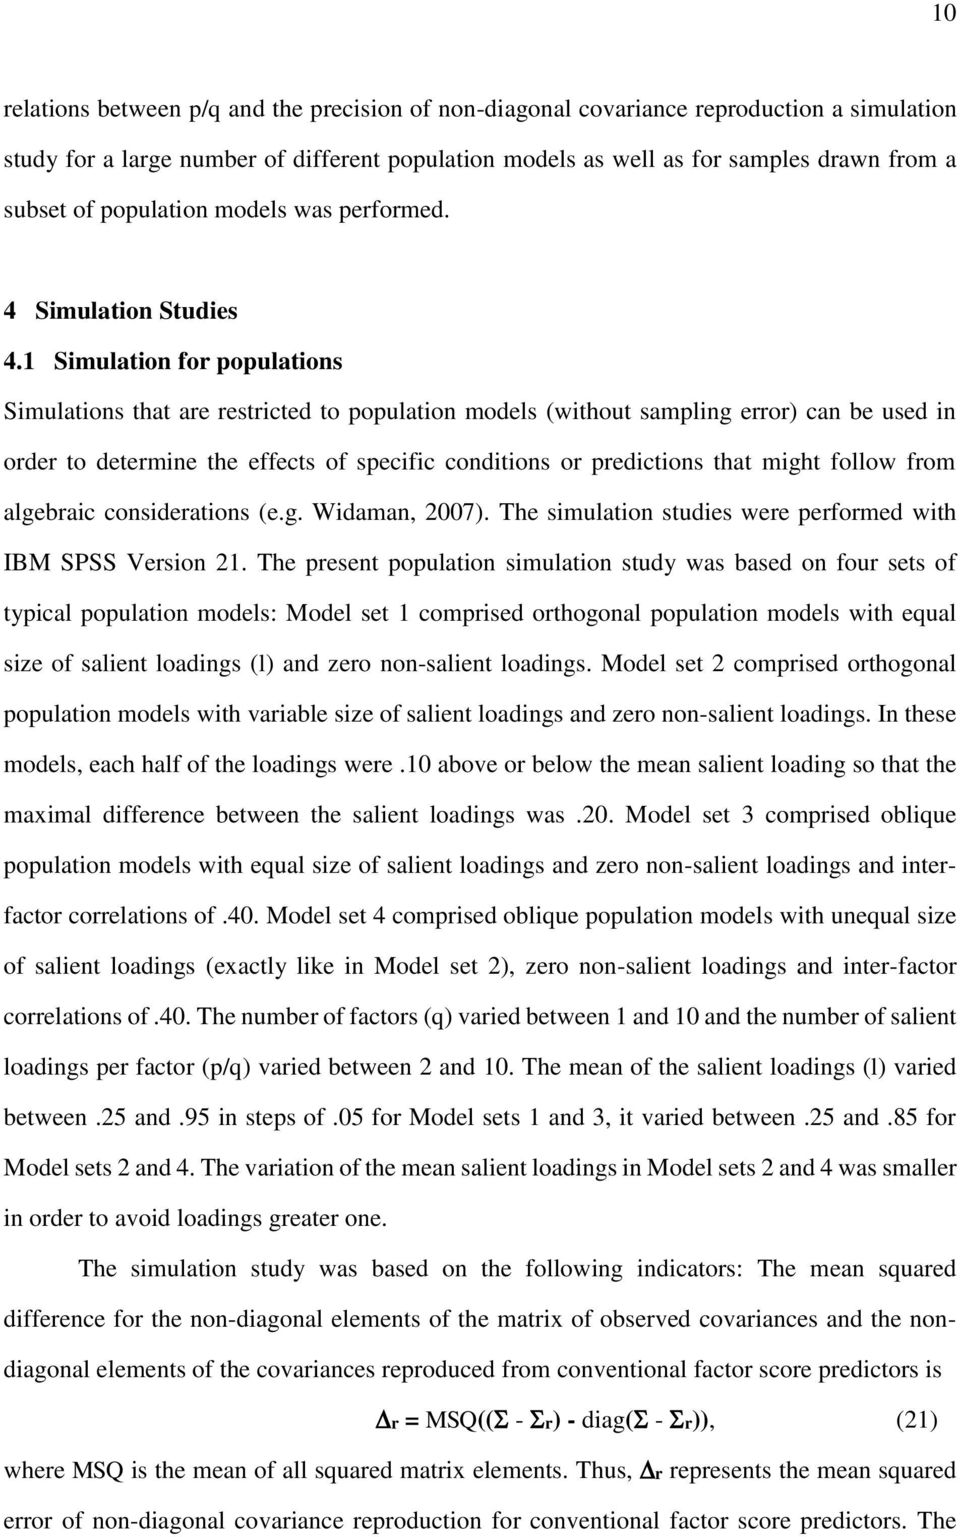 1 Simulation for populations Simulations that are restricted to population models (without sampling error) can be used in order to determine the effects of specific conditions or predictions that